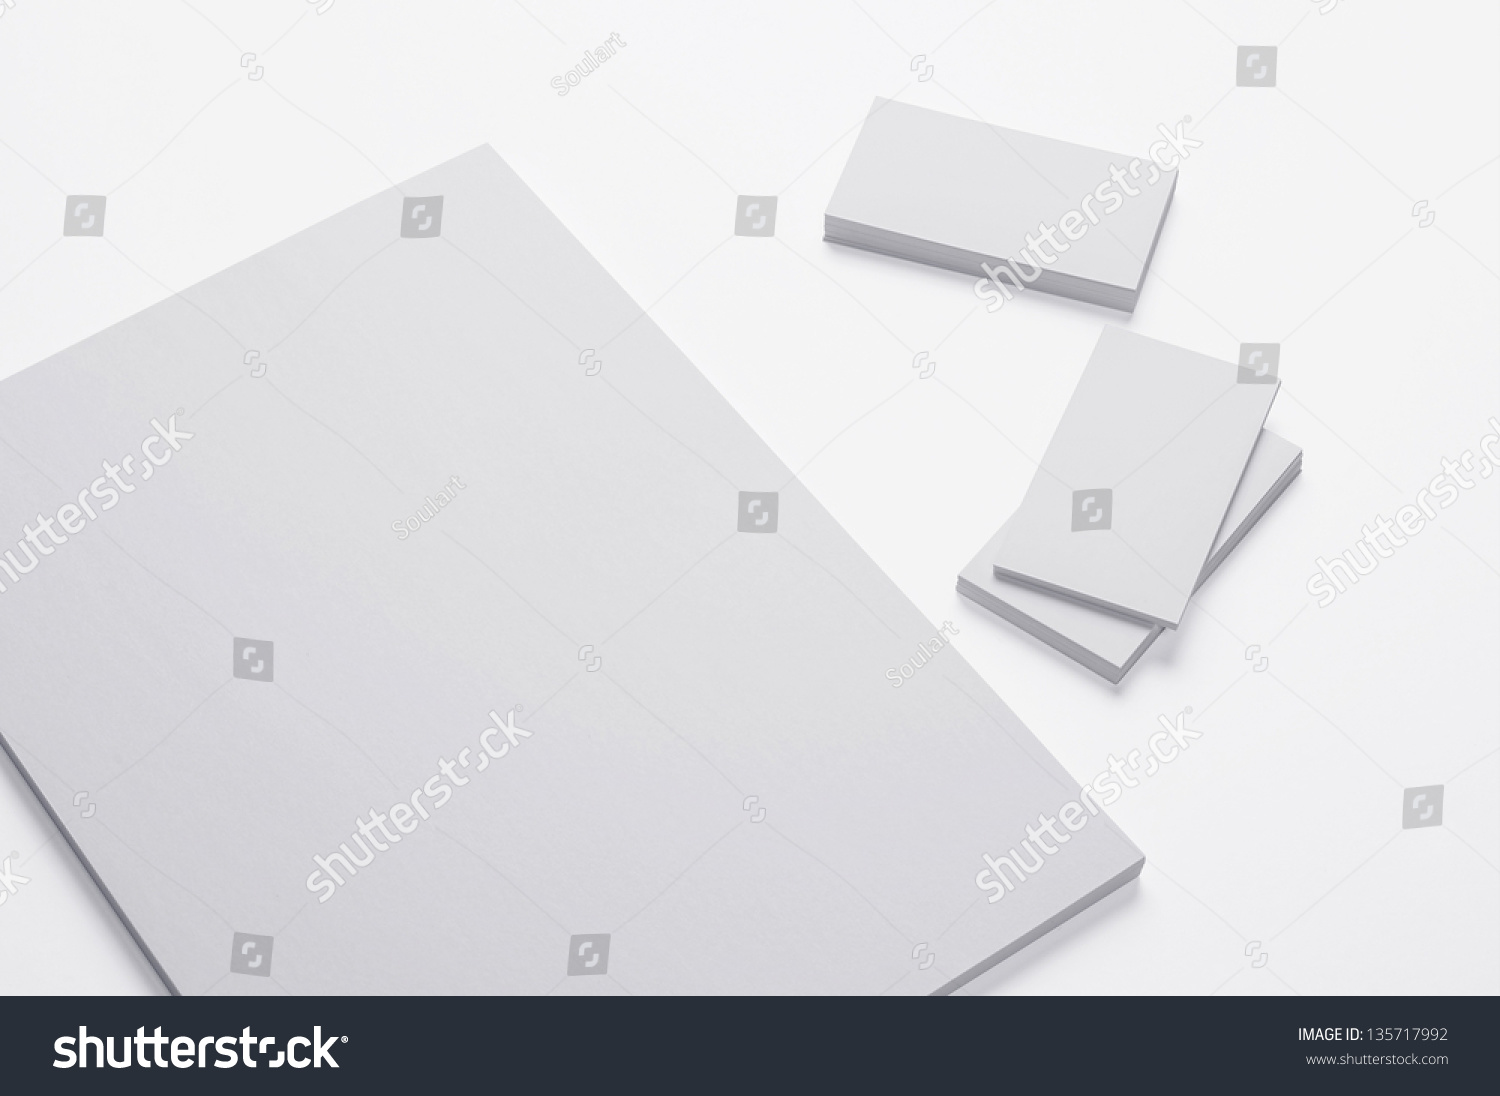 Blank A4 Print Paper Business Cards Stock Illustration 135717992 ...